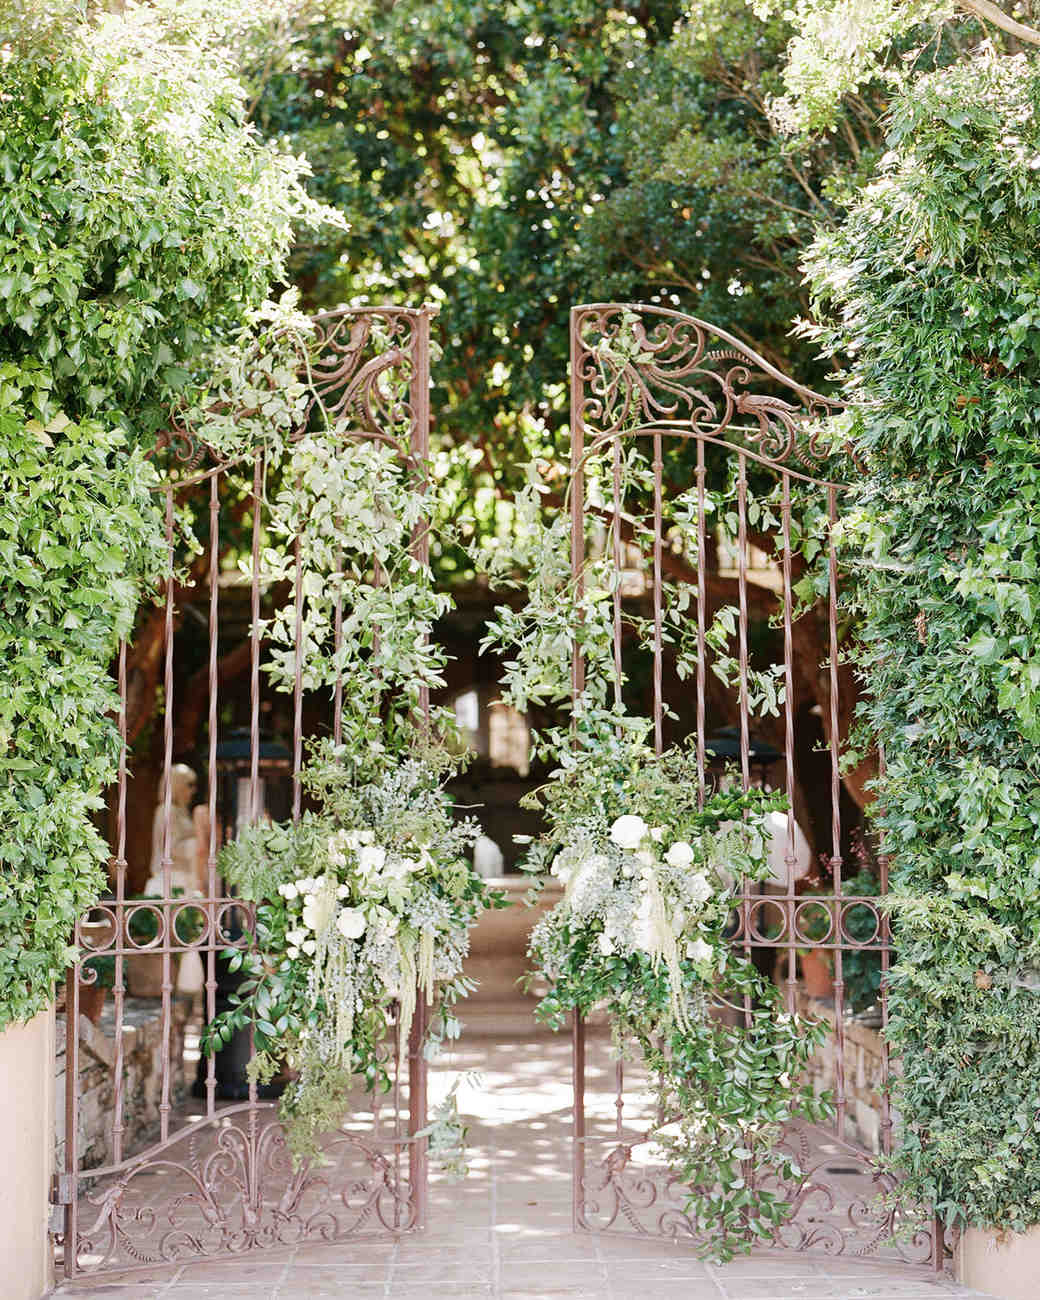 breelayne-hunter-wedding-california-0046-santa-lucia-preserve-fairy-woodsy-organic-gate-s112849.jpg